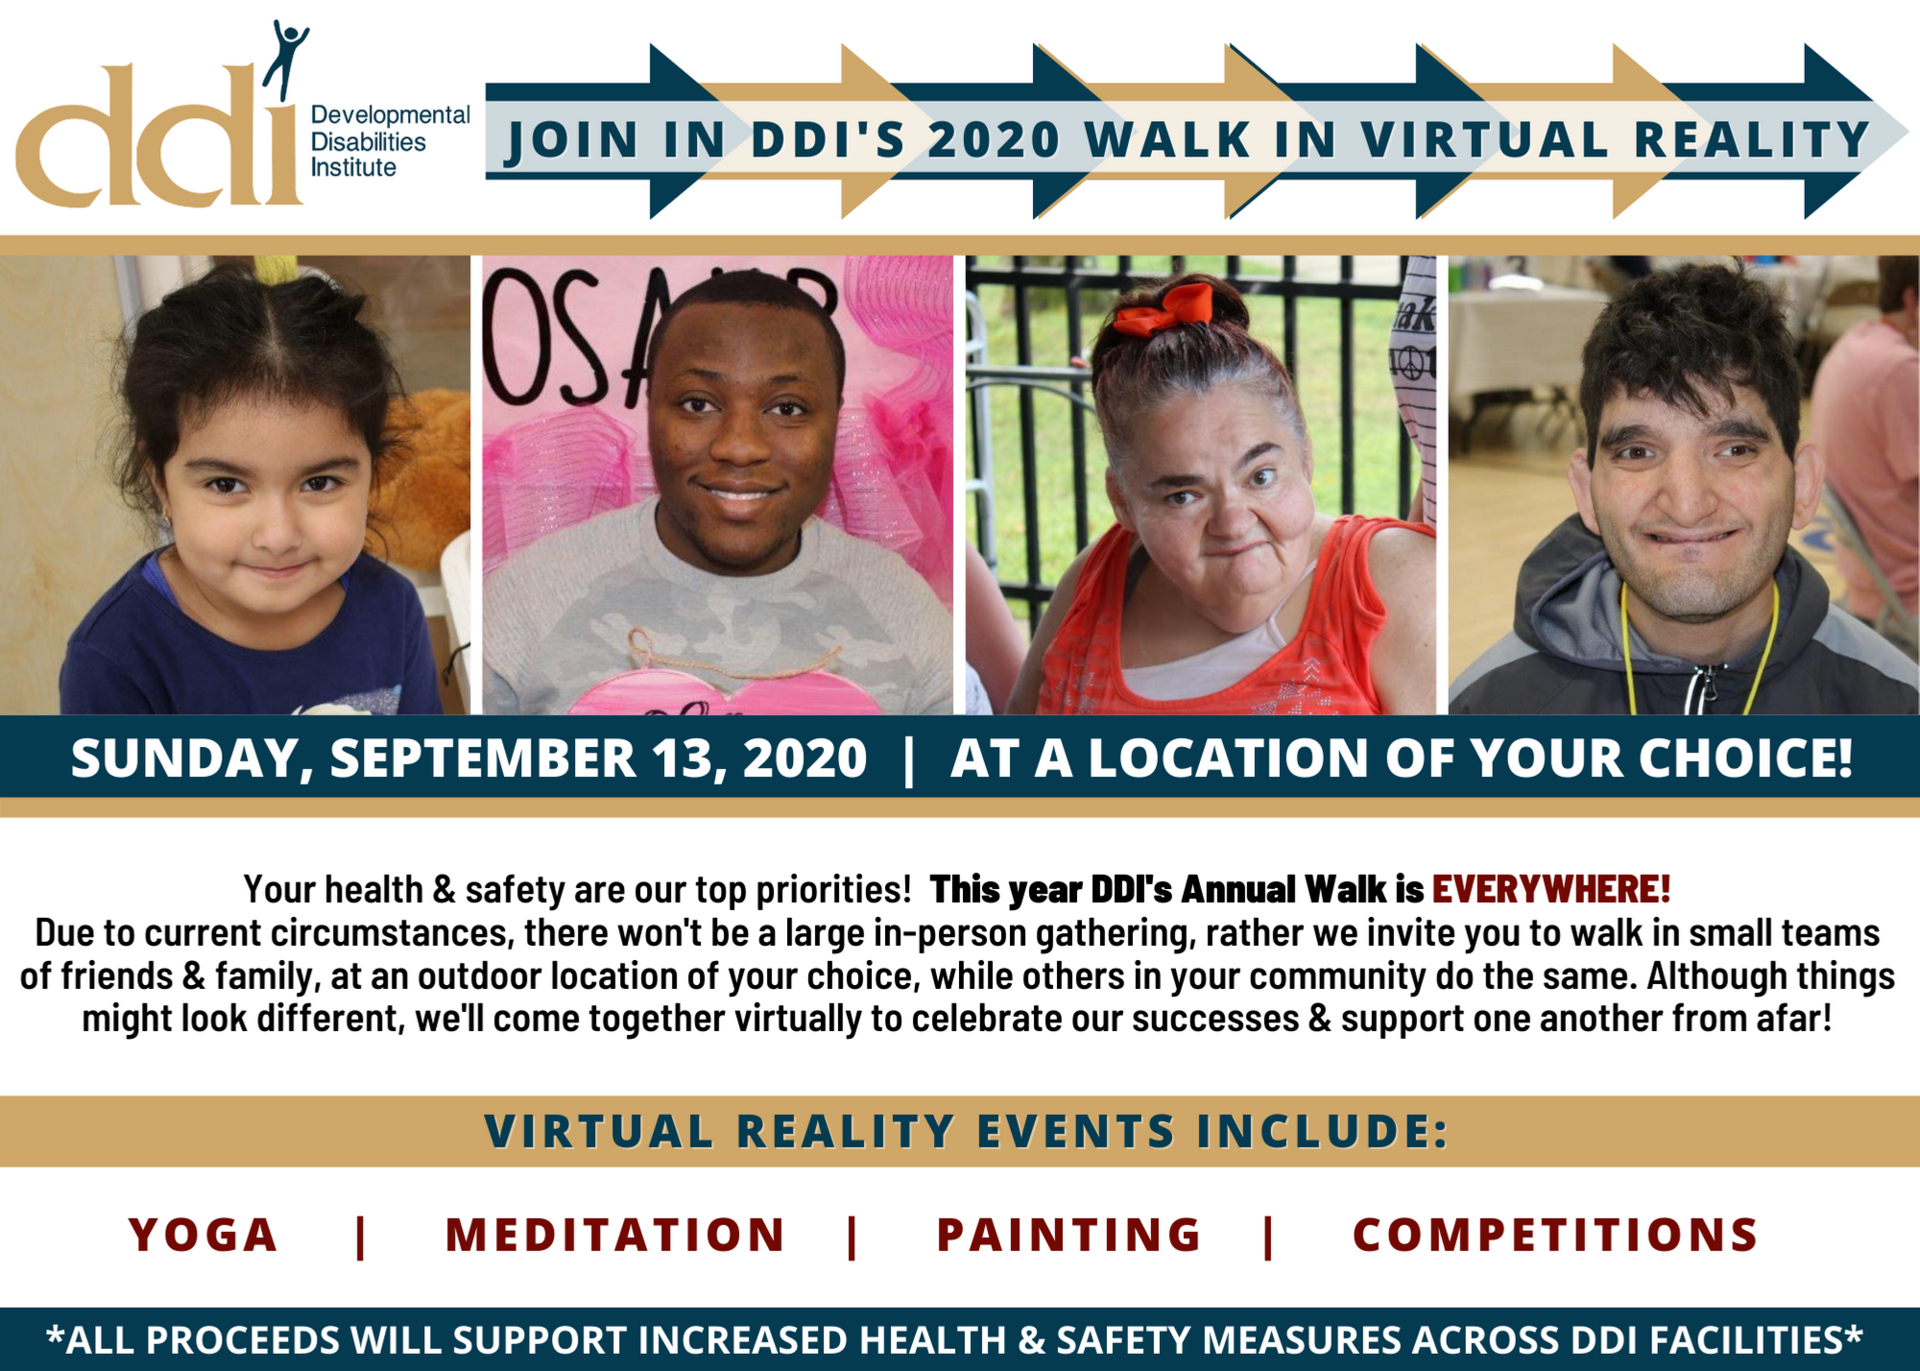 WALK 2020 invitation page 1